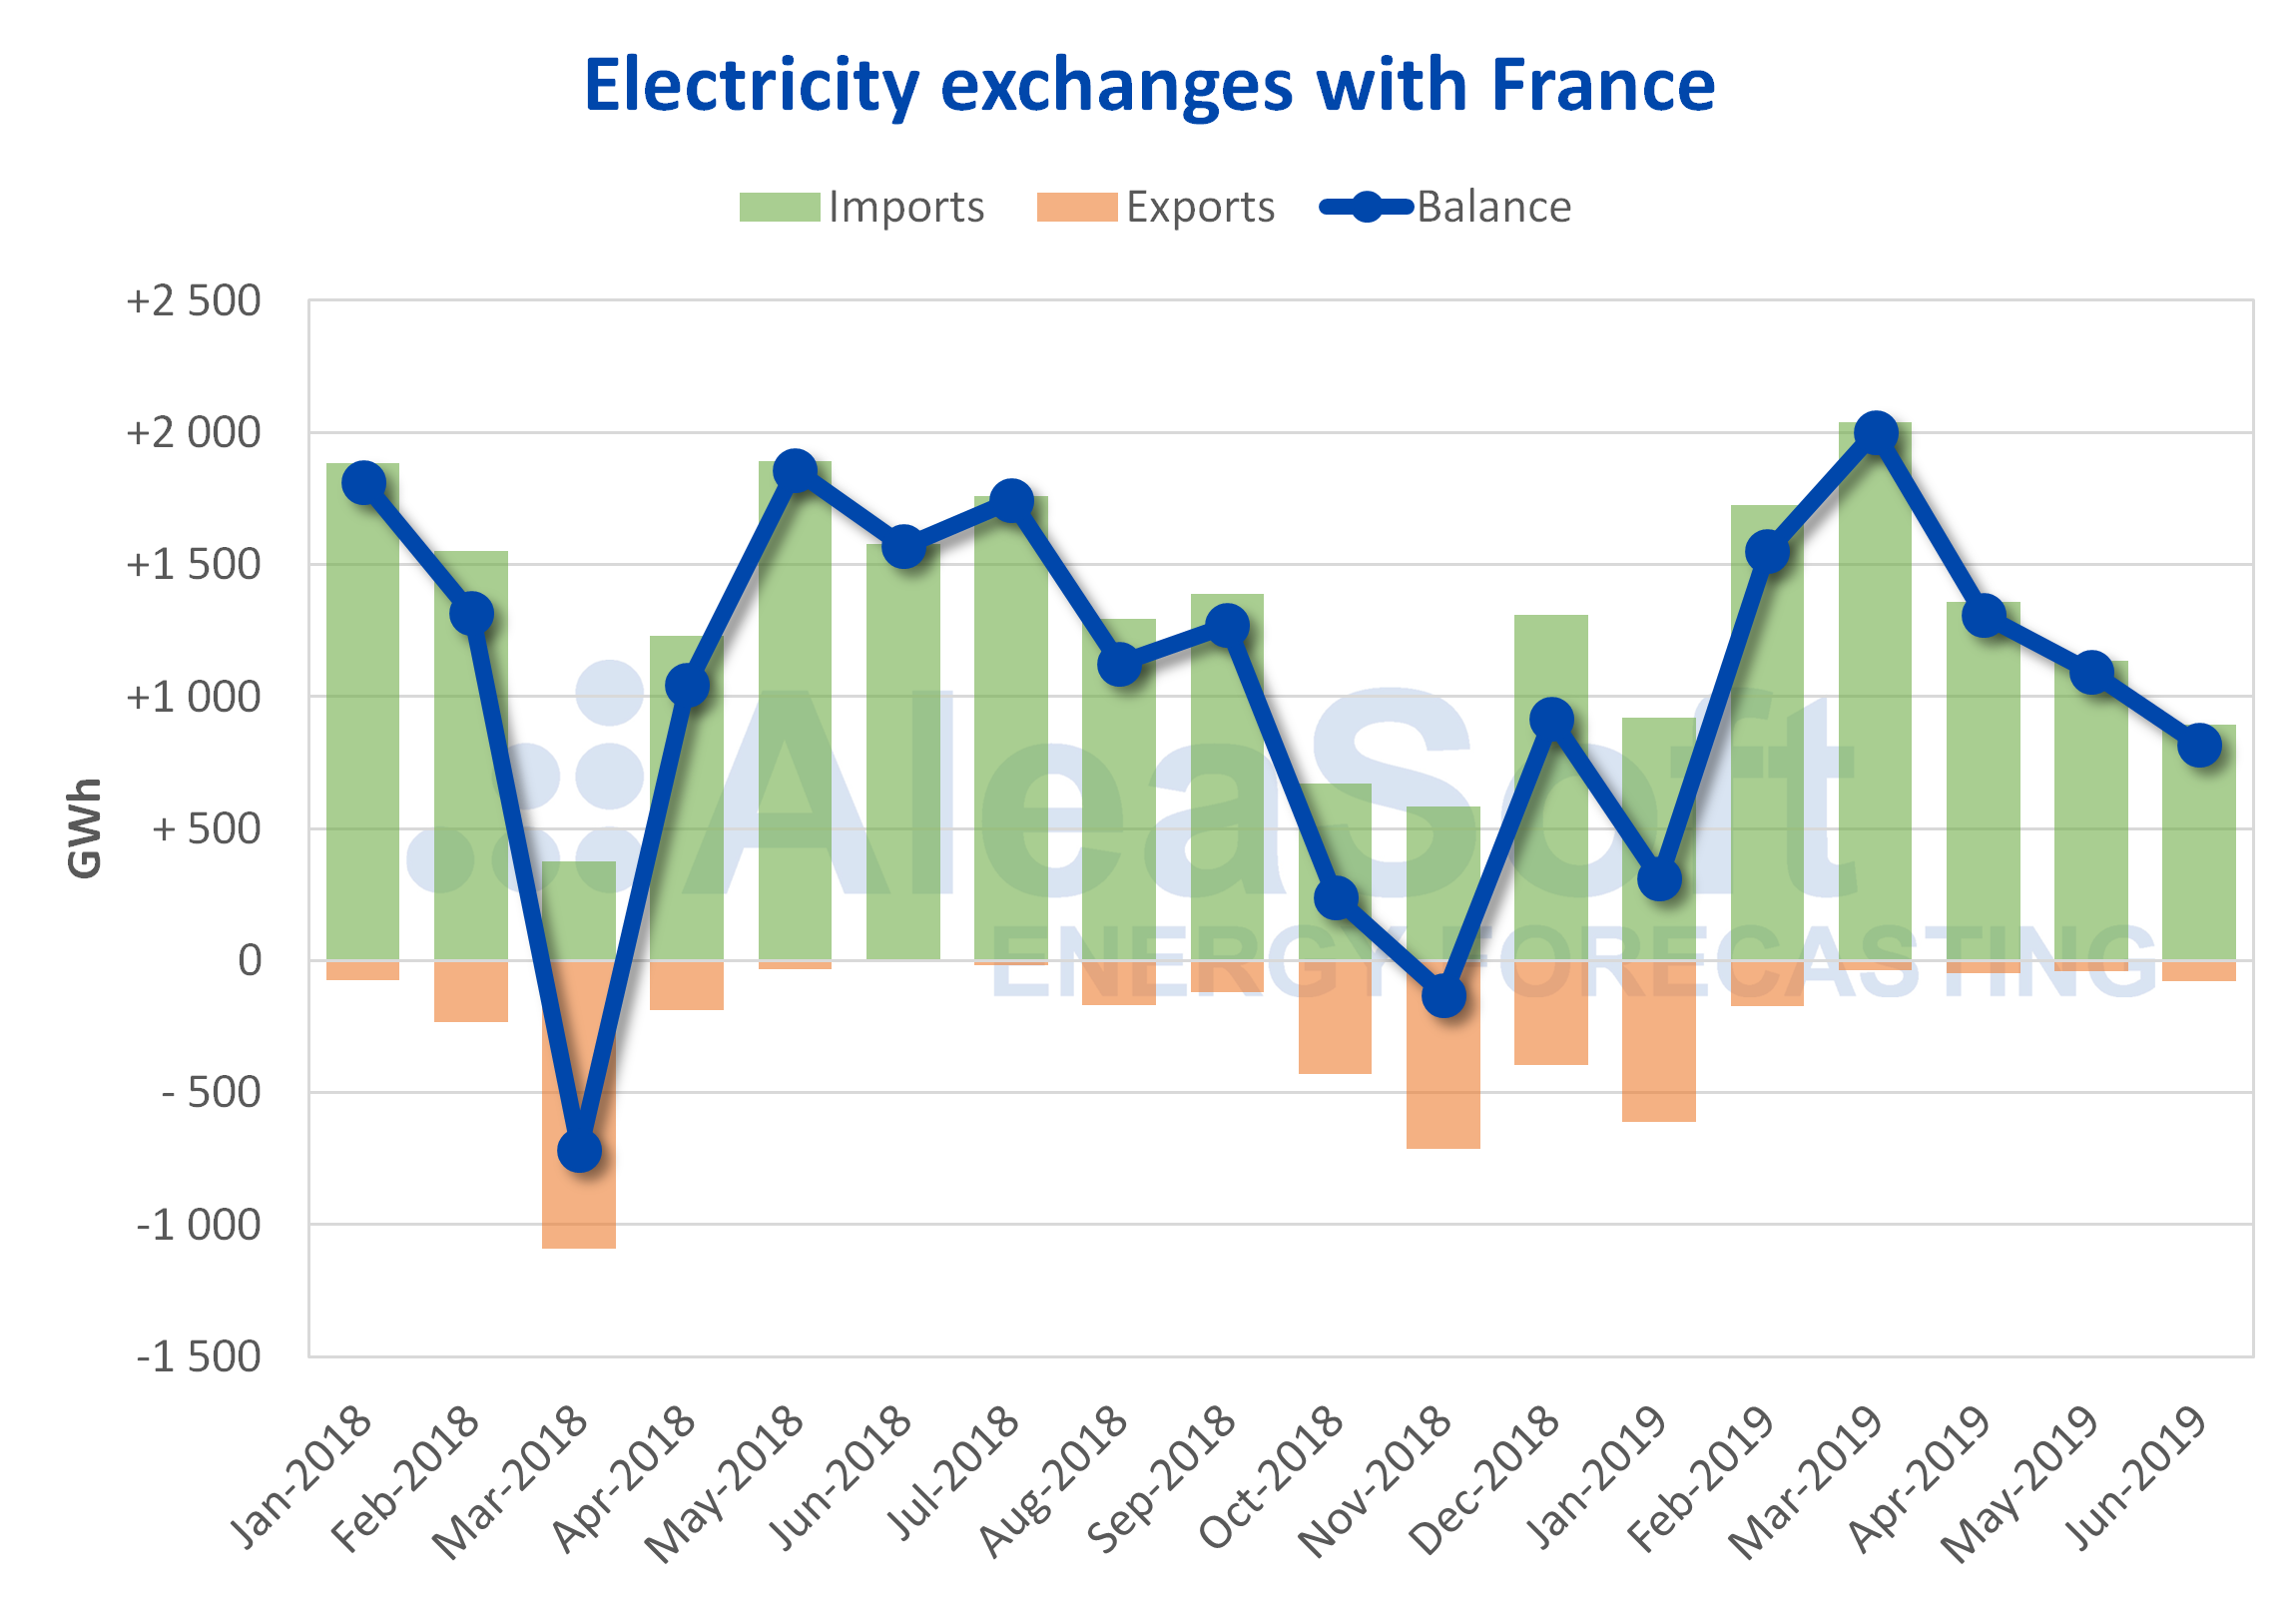 AleaSoft - International electricity exchanges France